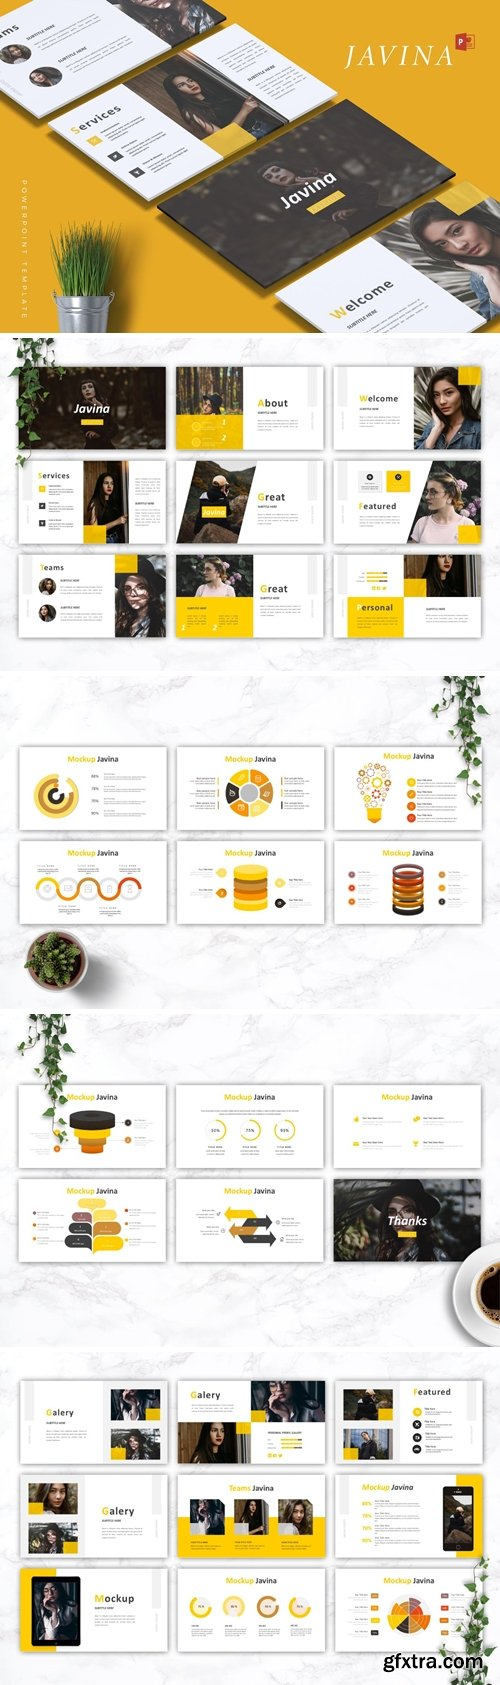 JAVINA - Fashion - Powerpoint Google Slides and Keynote Templates